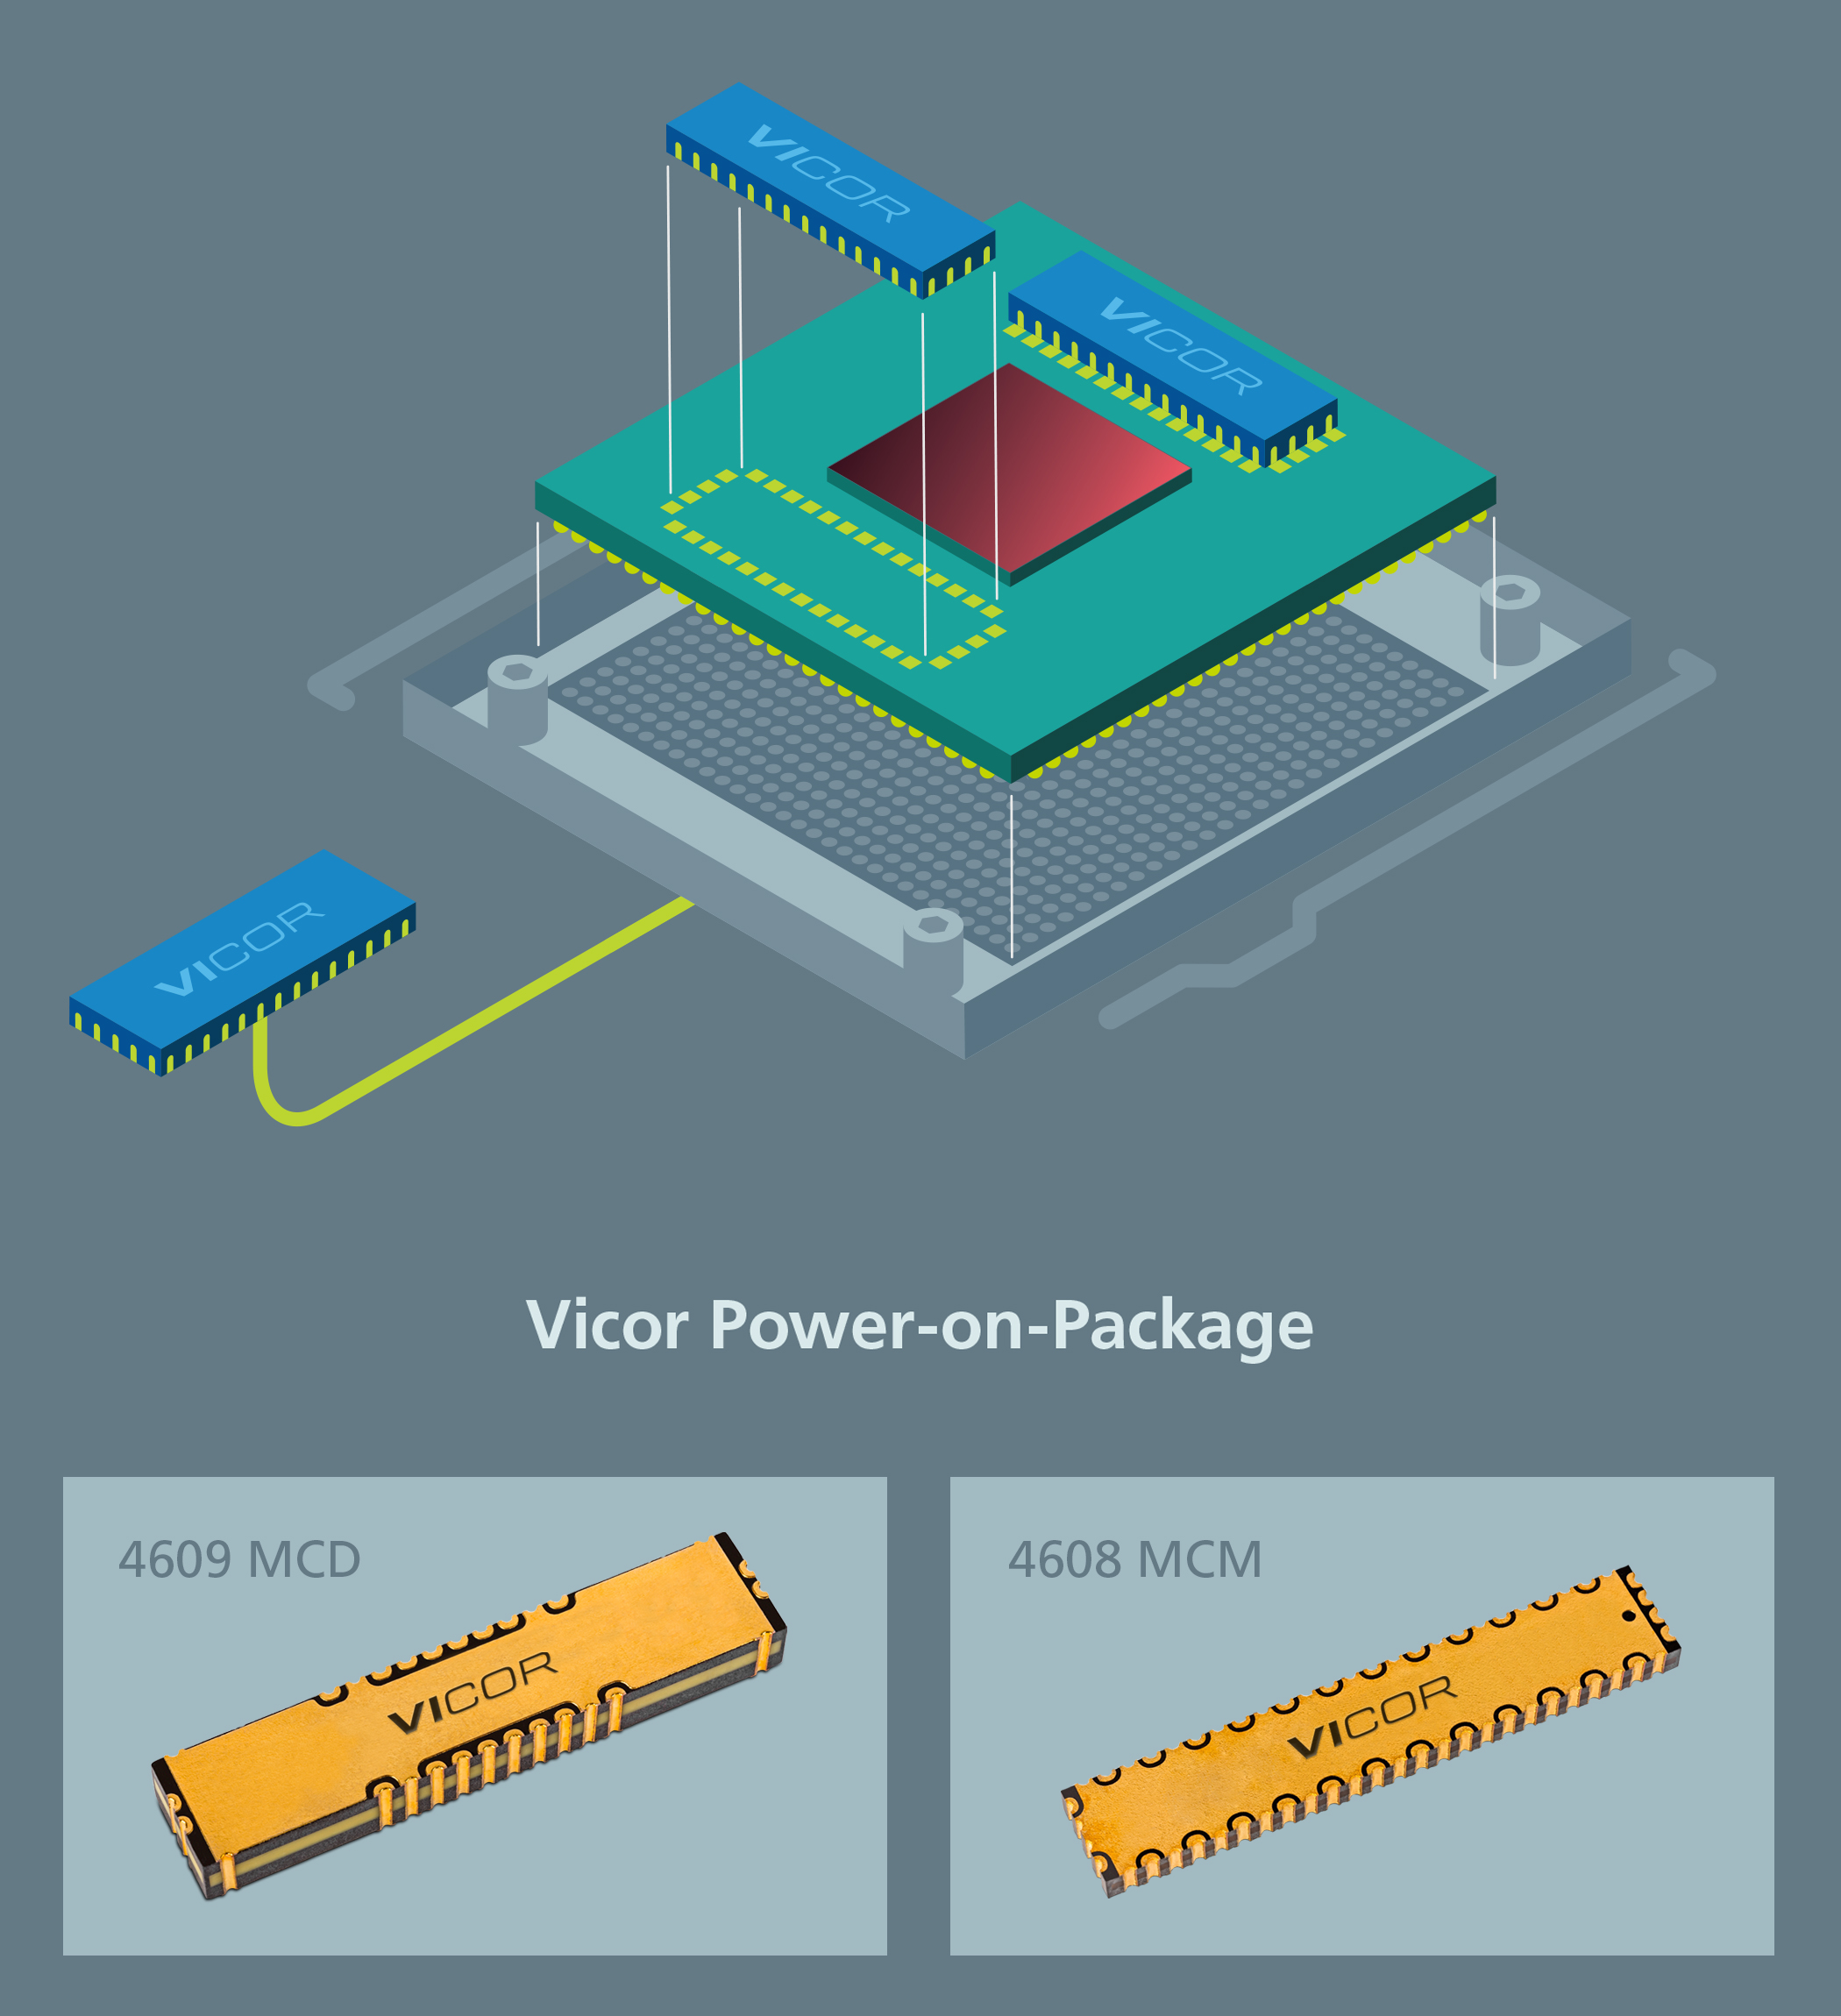 , Vicor's Power-on-Package System Provides up to 1,000A Peak Current